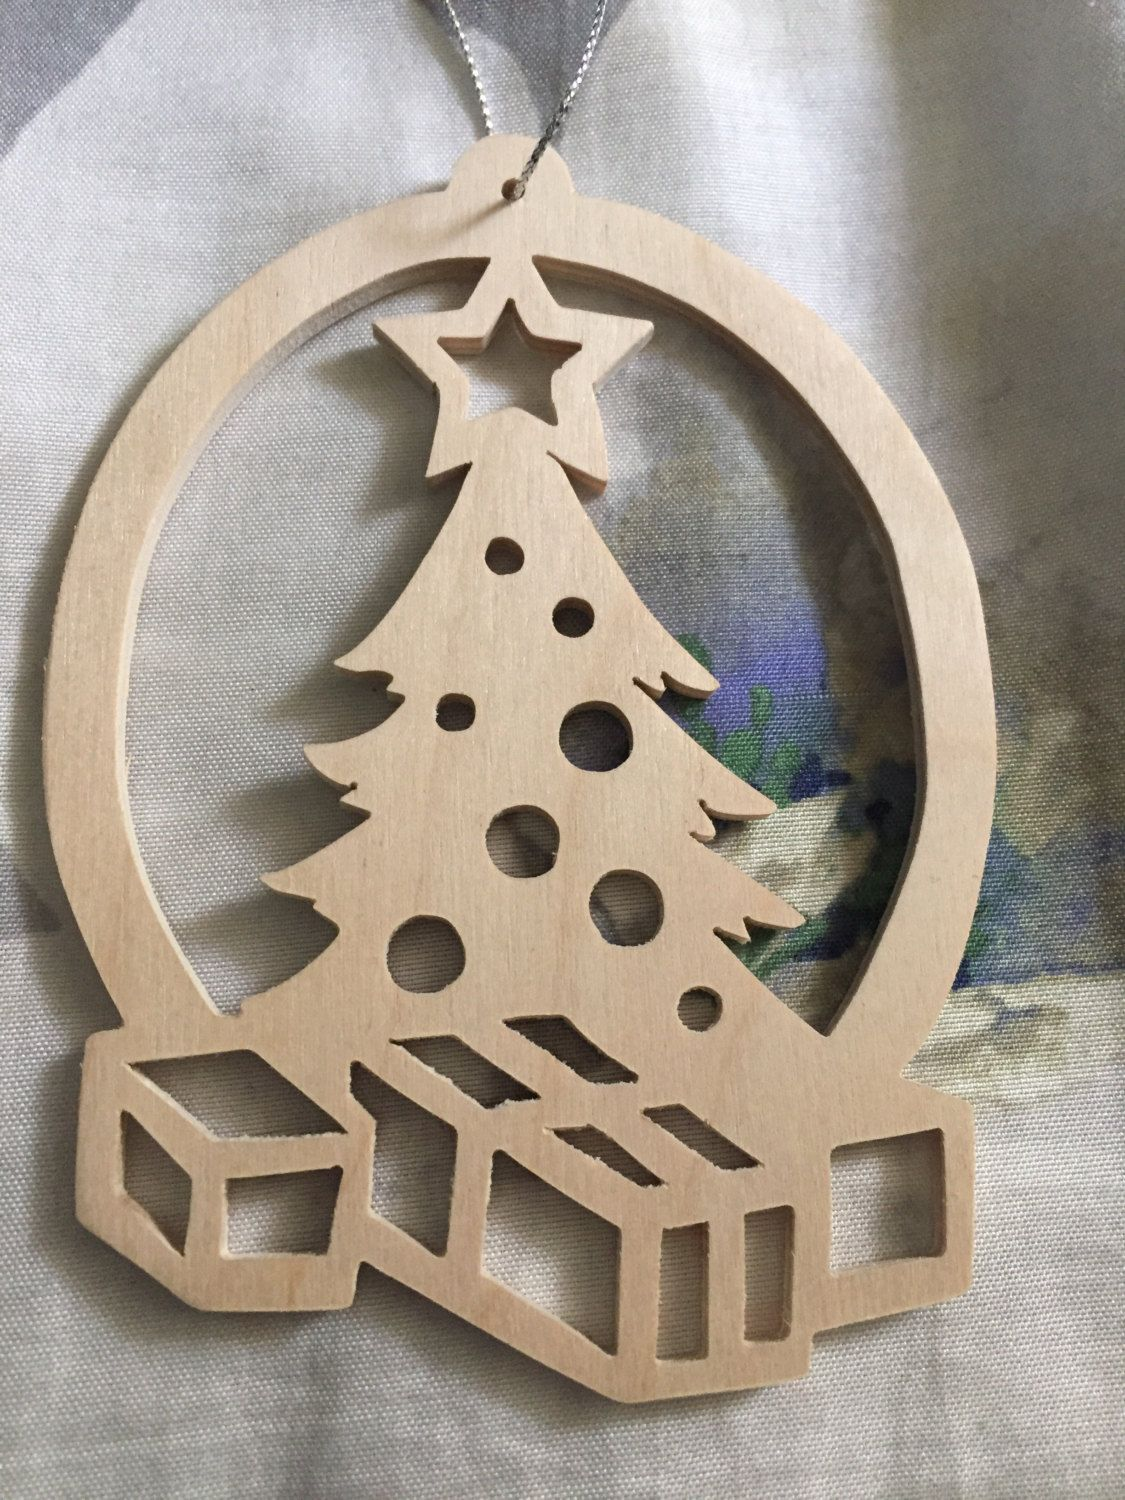 Scrollsawn Wooden Christmas Tree With Gifts Underneath Tree Ornament By Wooden Crafts Wooden Christmas Trees Wood Ornaments